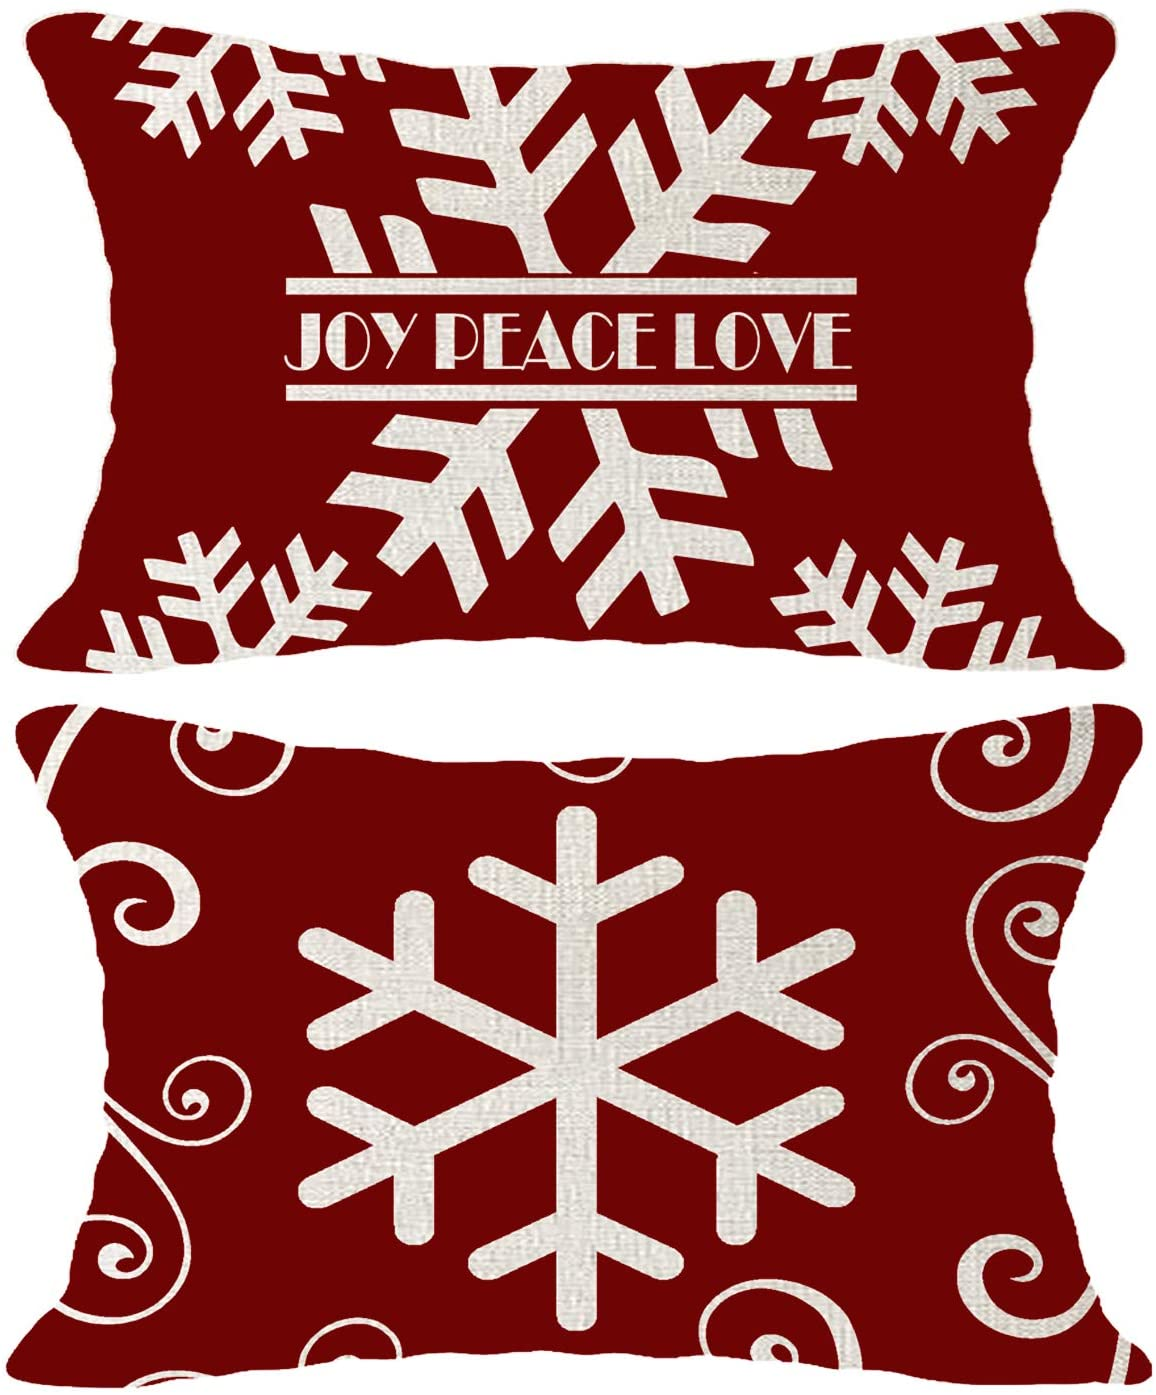 Hysunland Set of 2 Winter Red Throw Pillow Covers for Outdoor Couch Decor Rectangle 12x20 Inch Boho Snowflakes Pillow Cases Pillow Shams Home Party Living Room Decorations